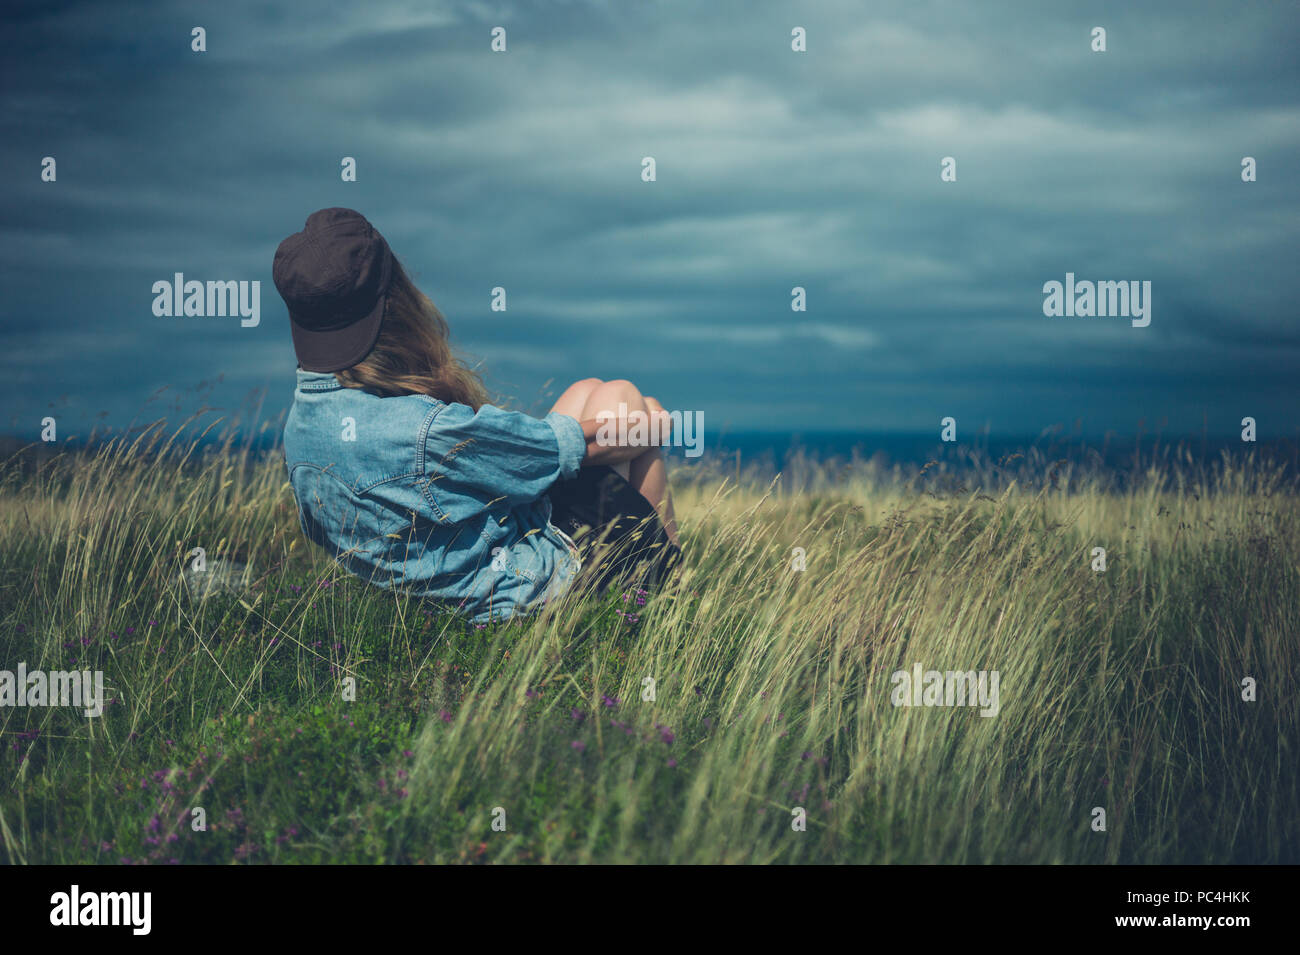 A young woman is sitting in a field on a windy day - Stock Image